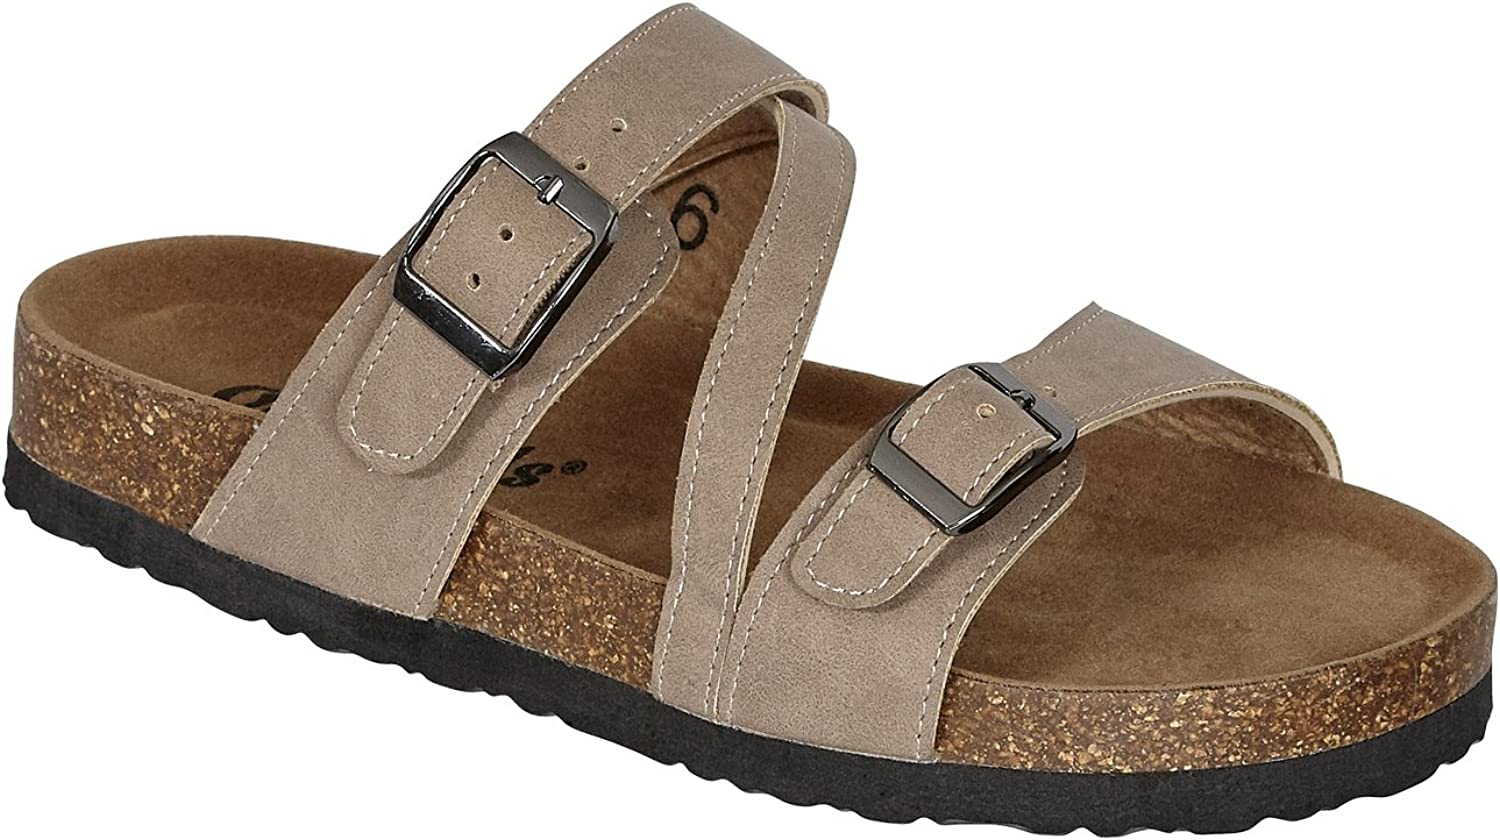 Outwoods Bork-56 Women's Strappy Buckle Slide Sandals